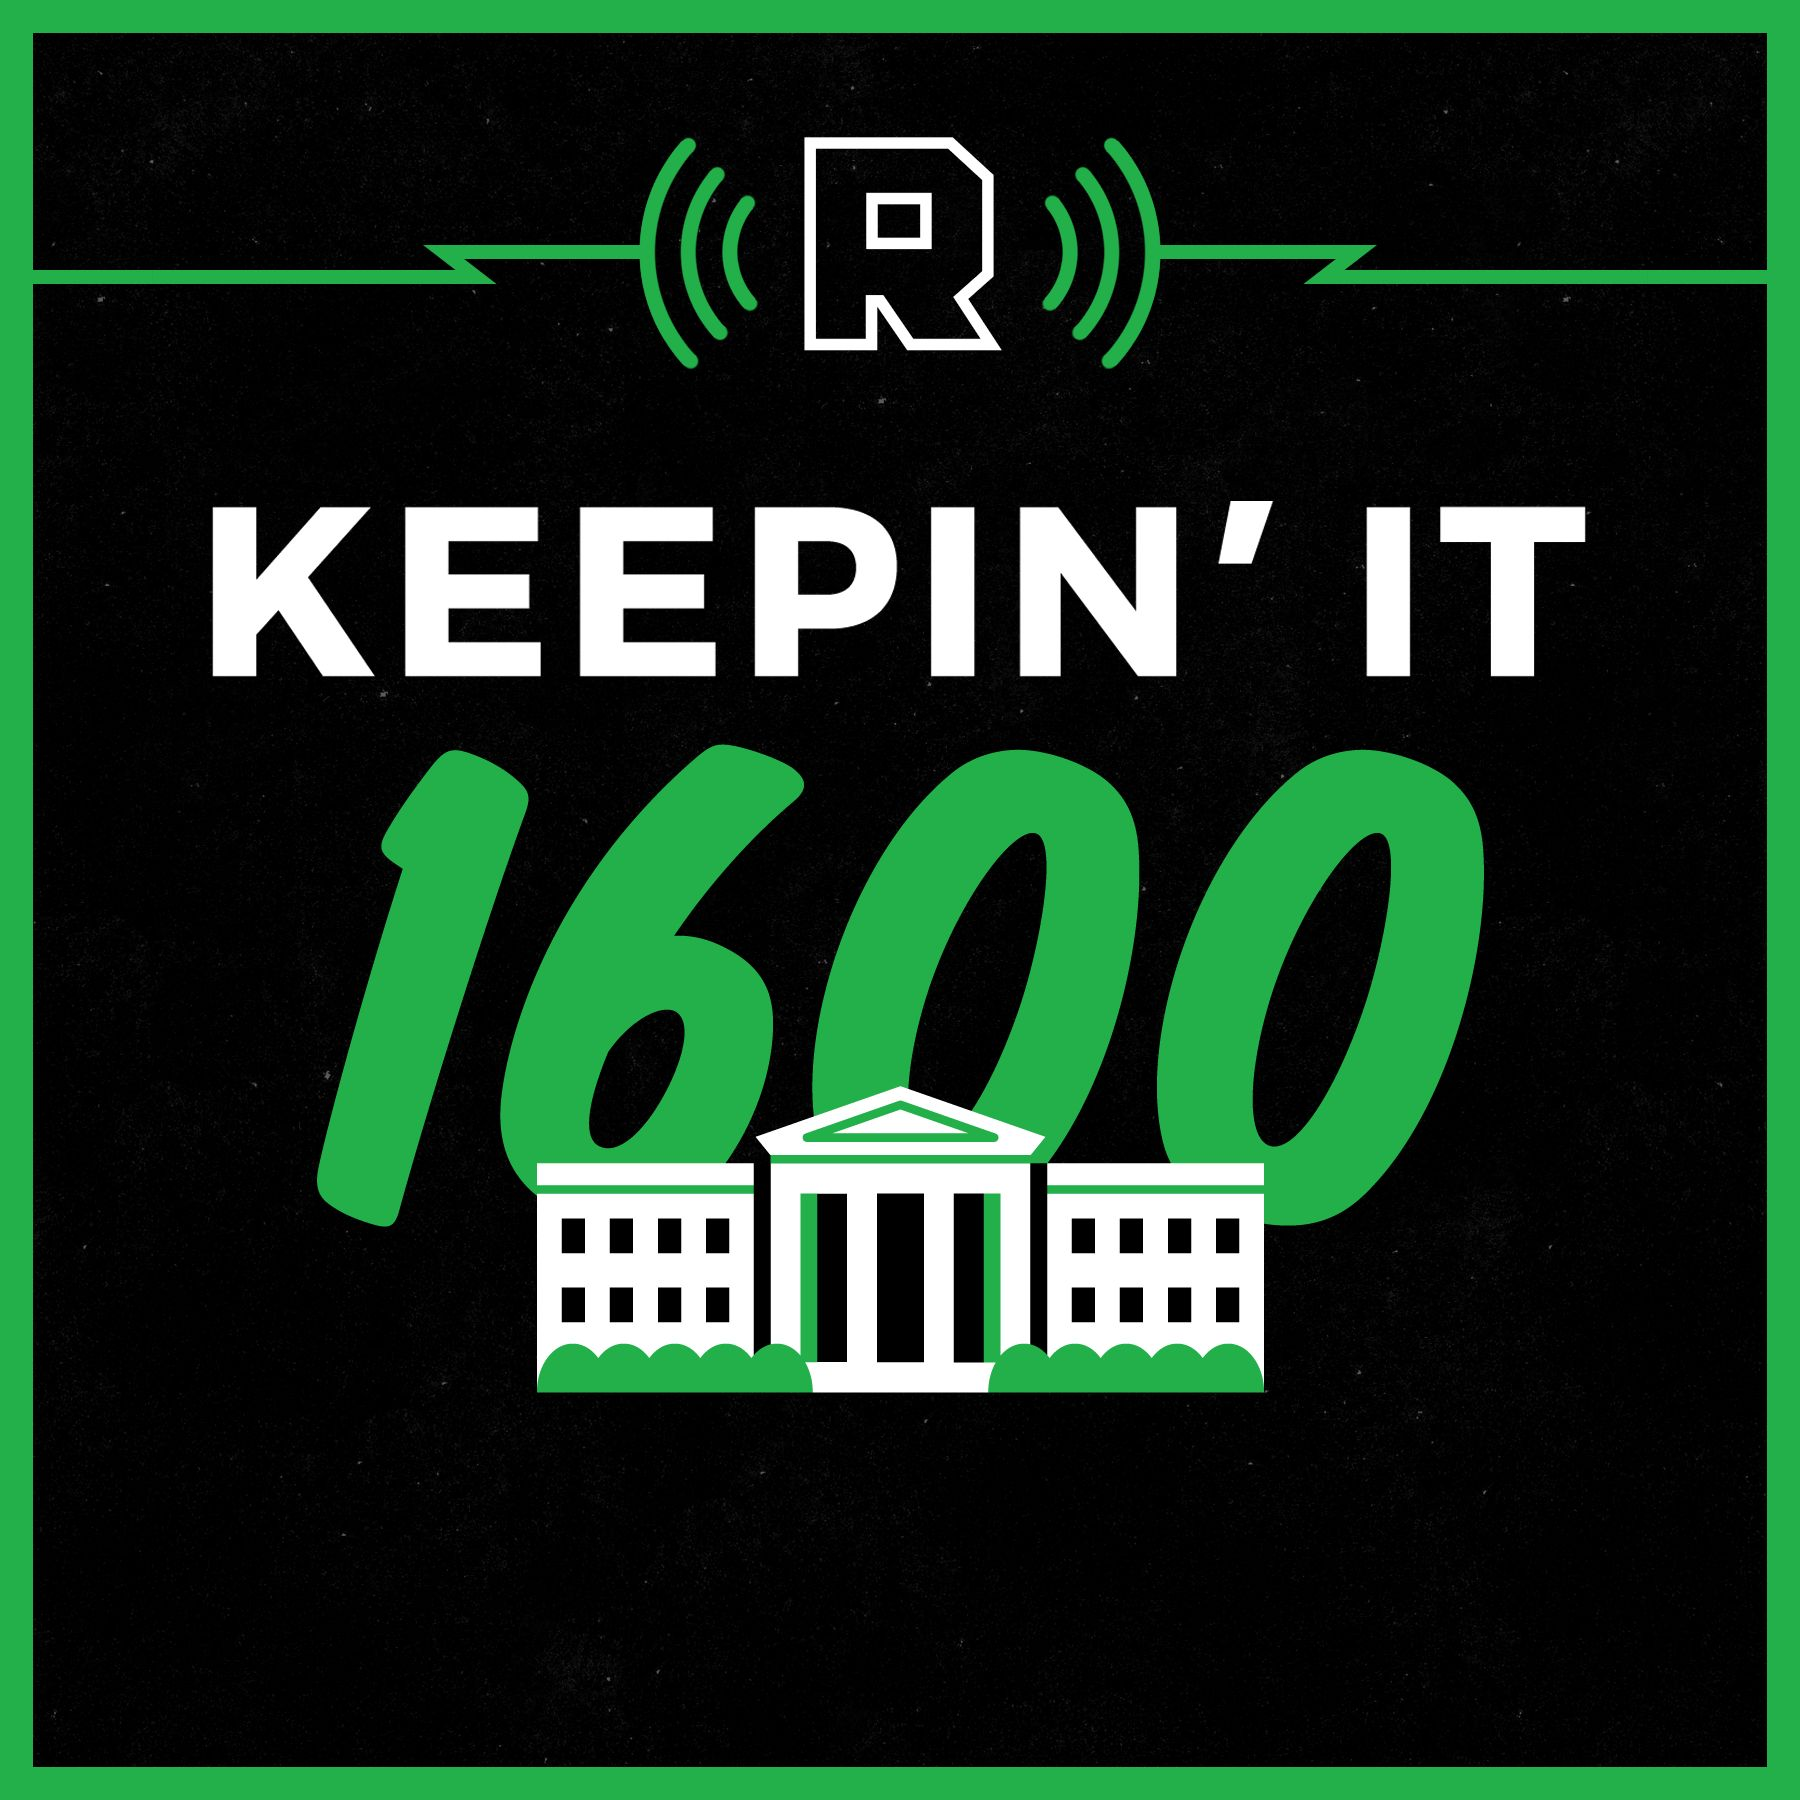 Keeping it 1600 logo